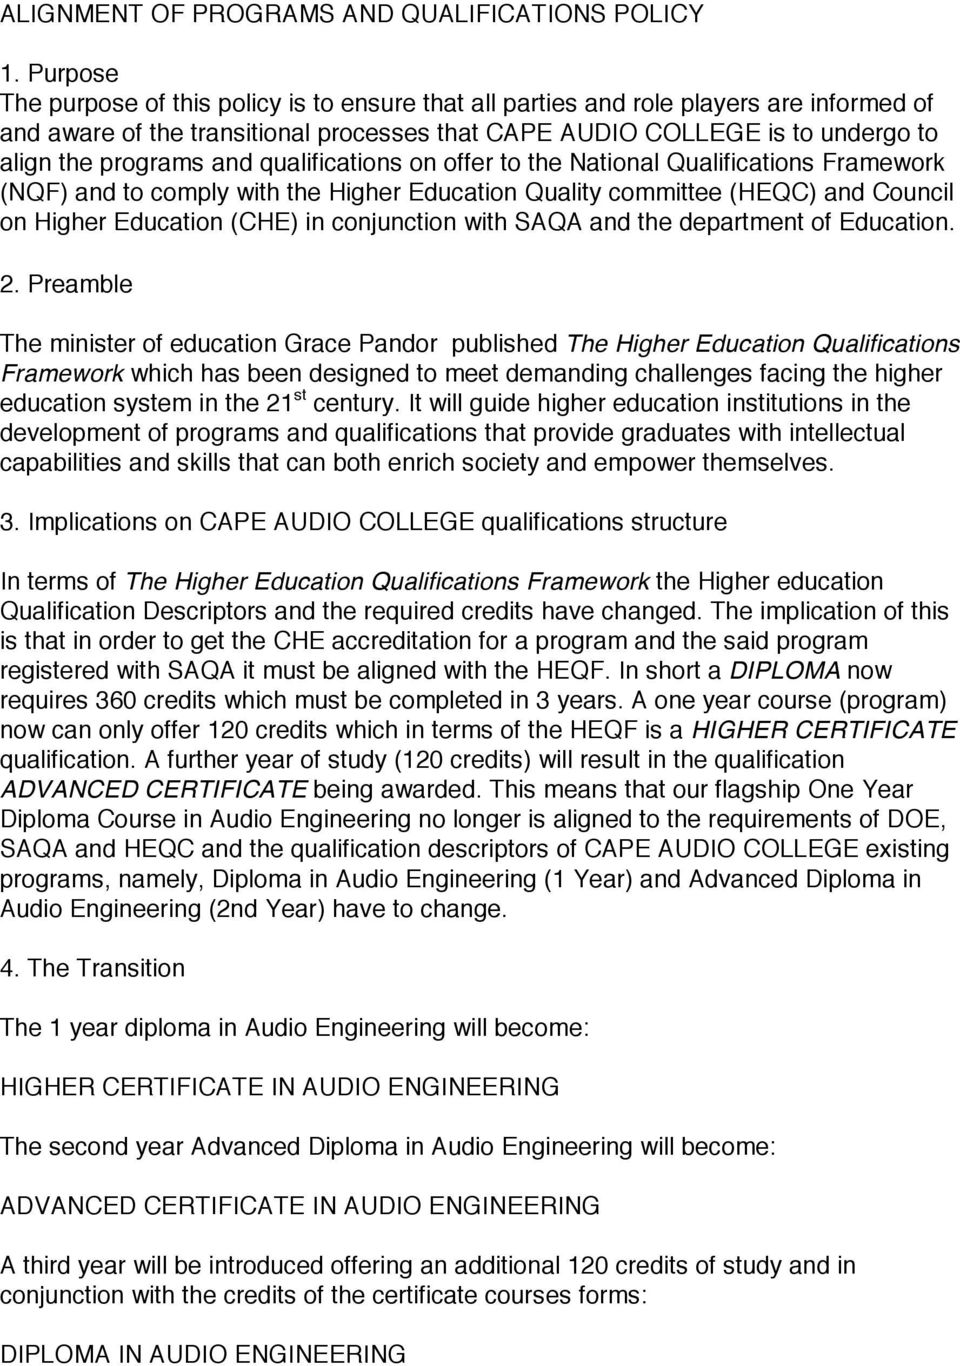 and qualifications on offer to the National Qualifications Framework (NQF) and to comply with the Higher Education Quality committee (HEQC) and Council on Higher Education (CHE) in conjunction with